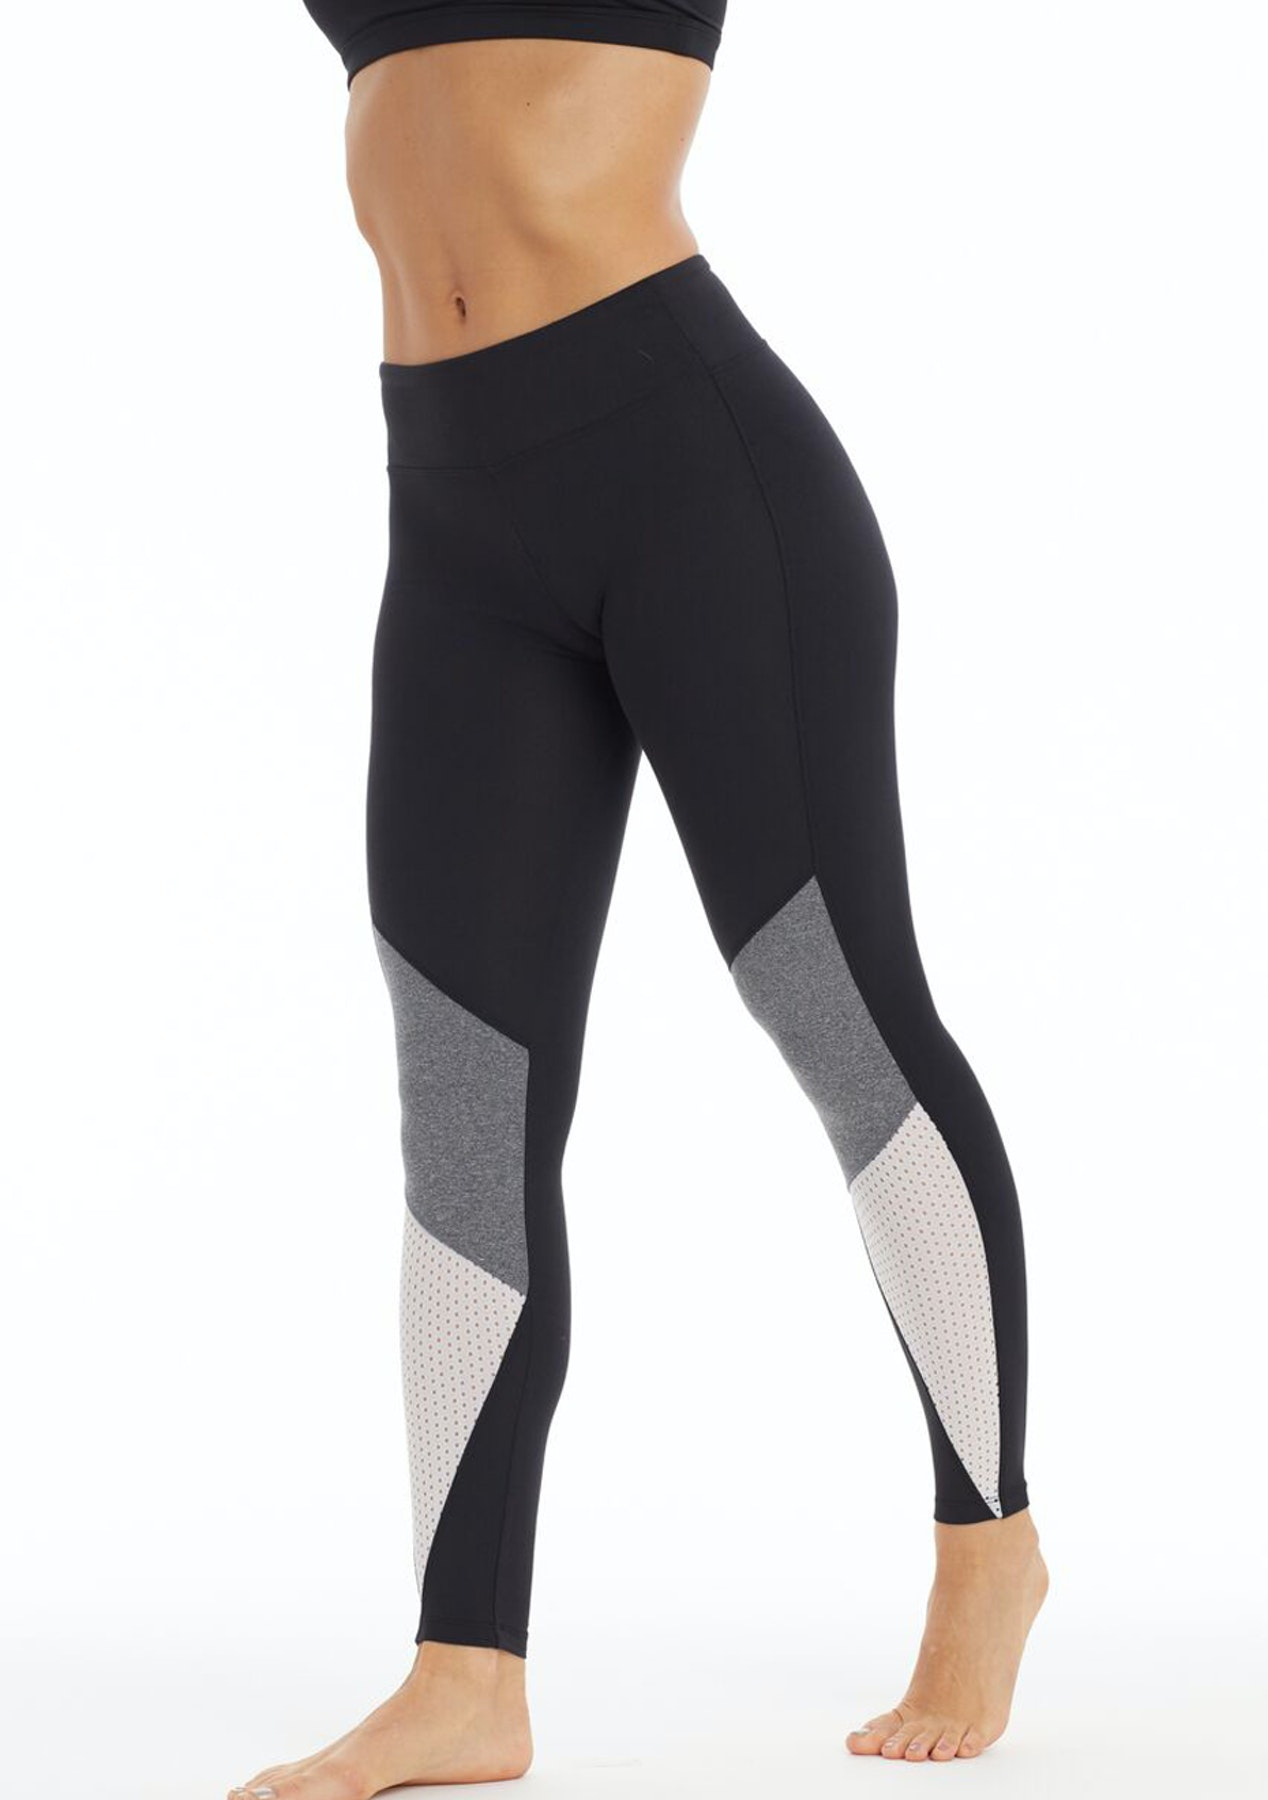 6f26f3d607143 Balance Collection by Marika - Malibu Legging - Black/ H. Charc - All New  Activewear: Nothing Over $40 - Onceit